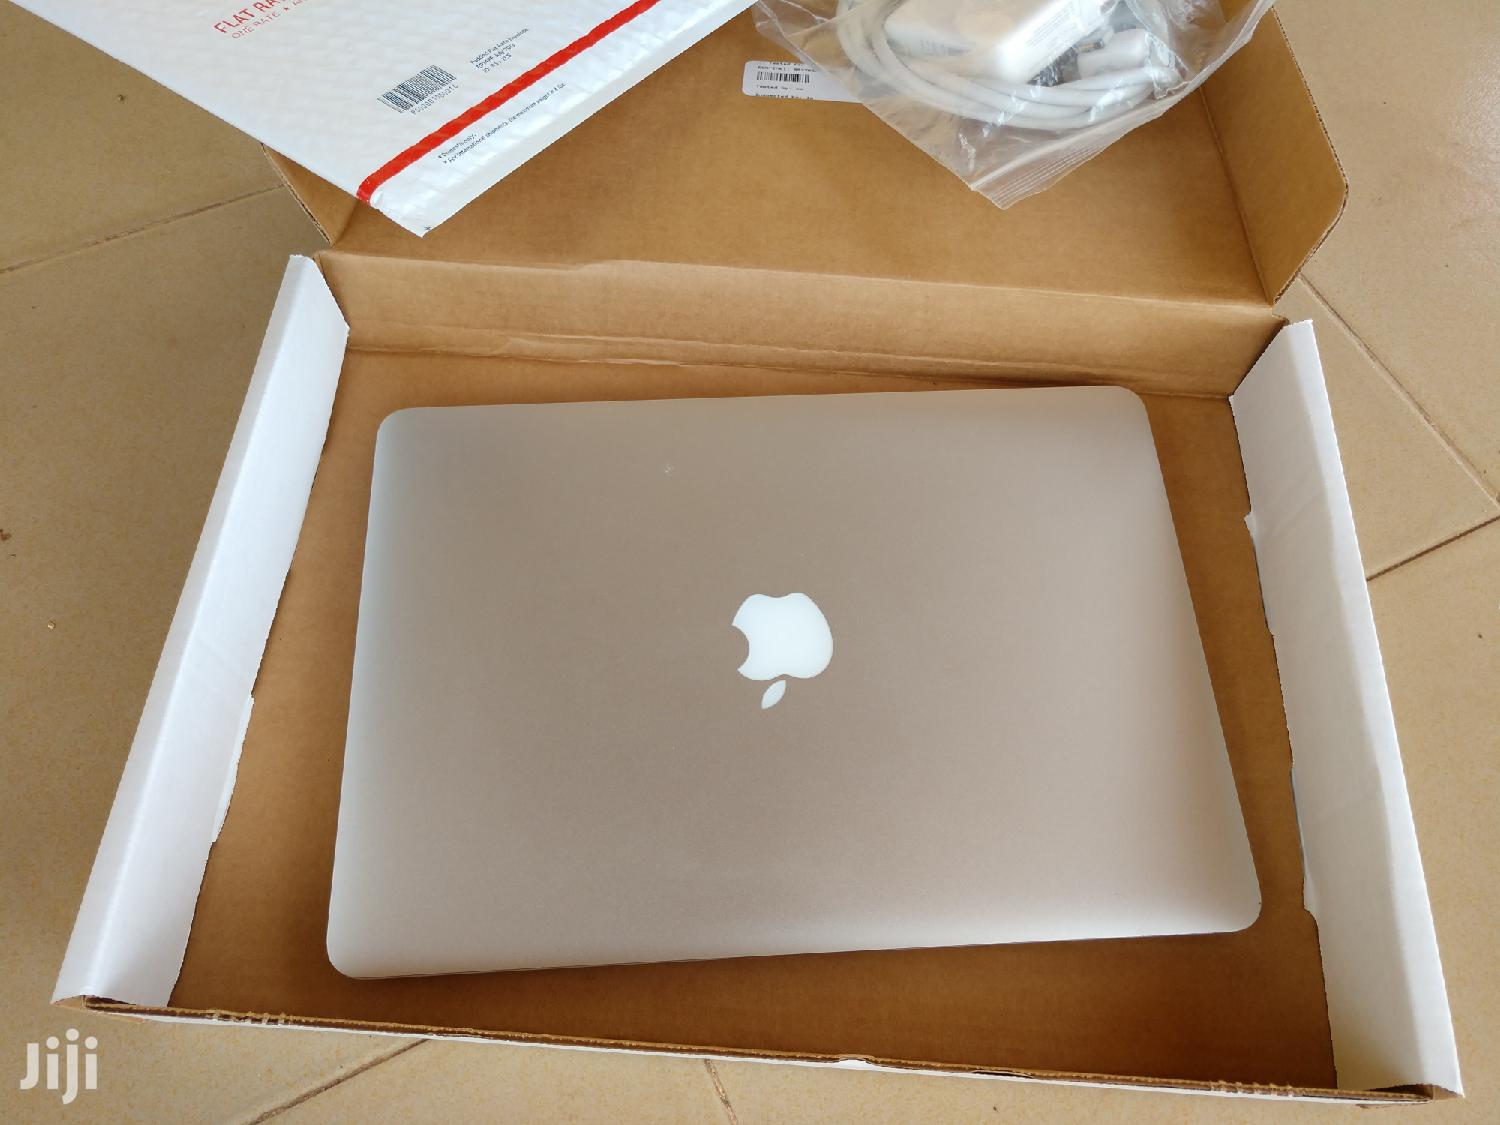 Laptop Apple MacBook Air 8GB Intel Core i5 SSD 256GB | Laptops & Computers for sale in Accra Metropolitan, Greater Accra, Ghana